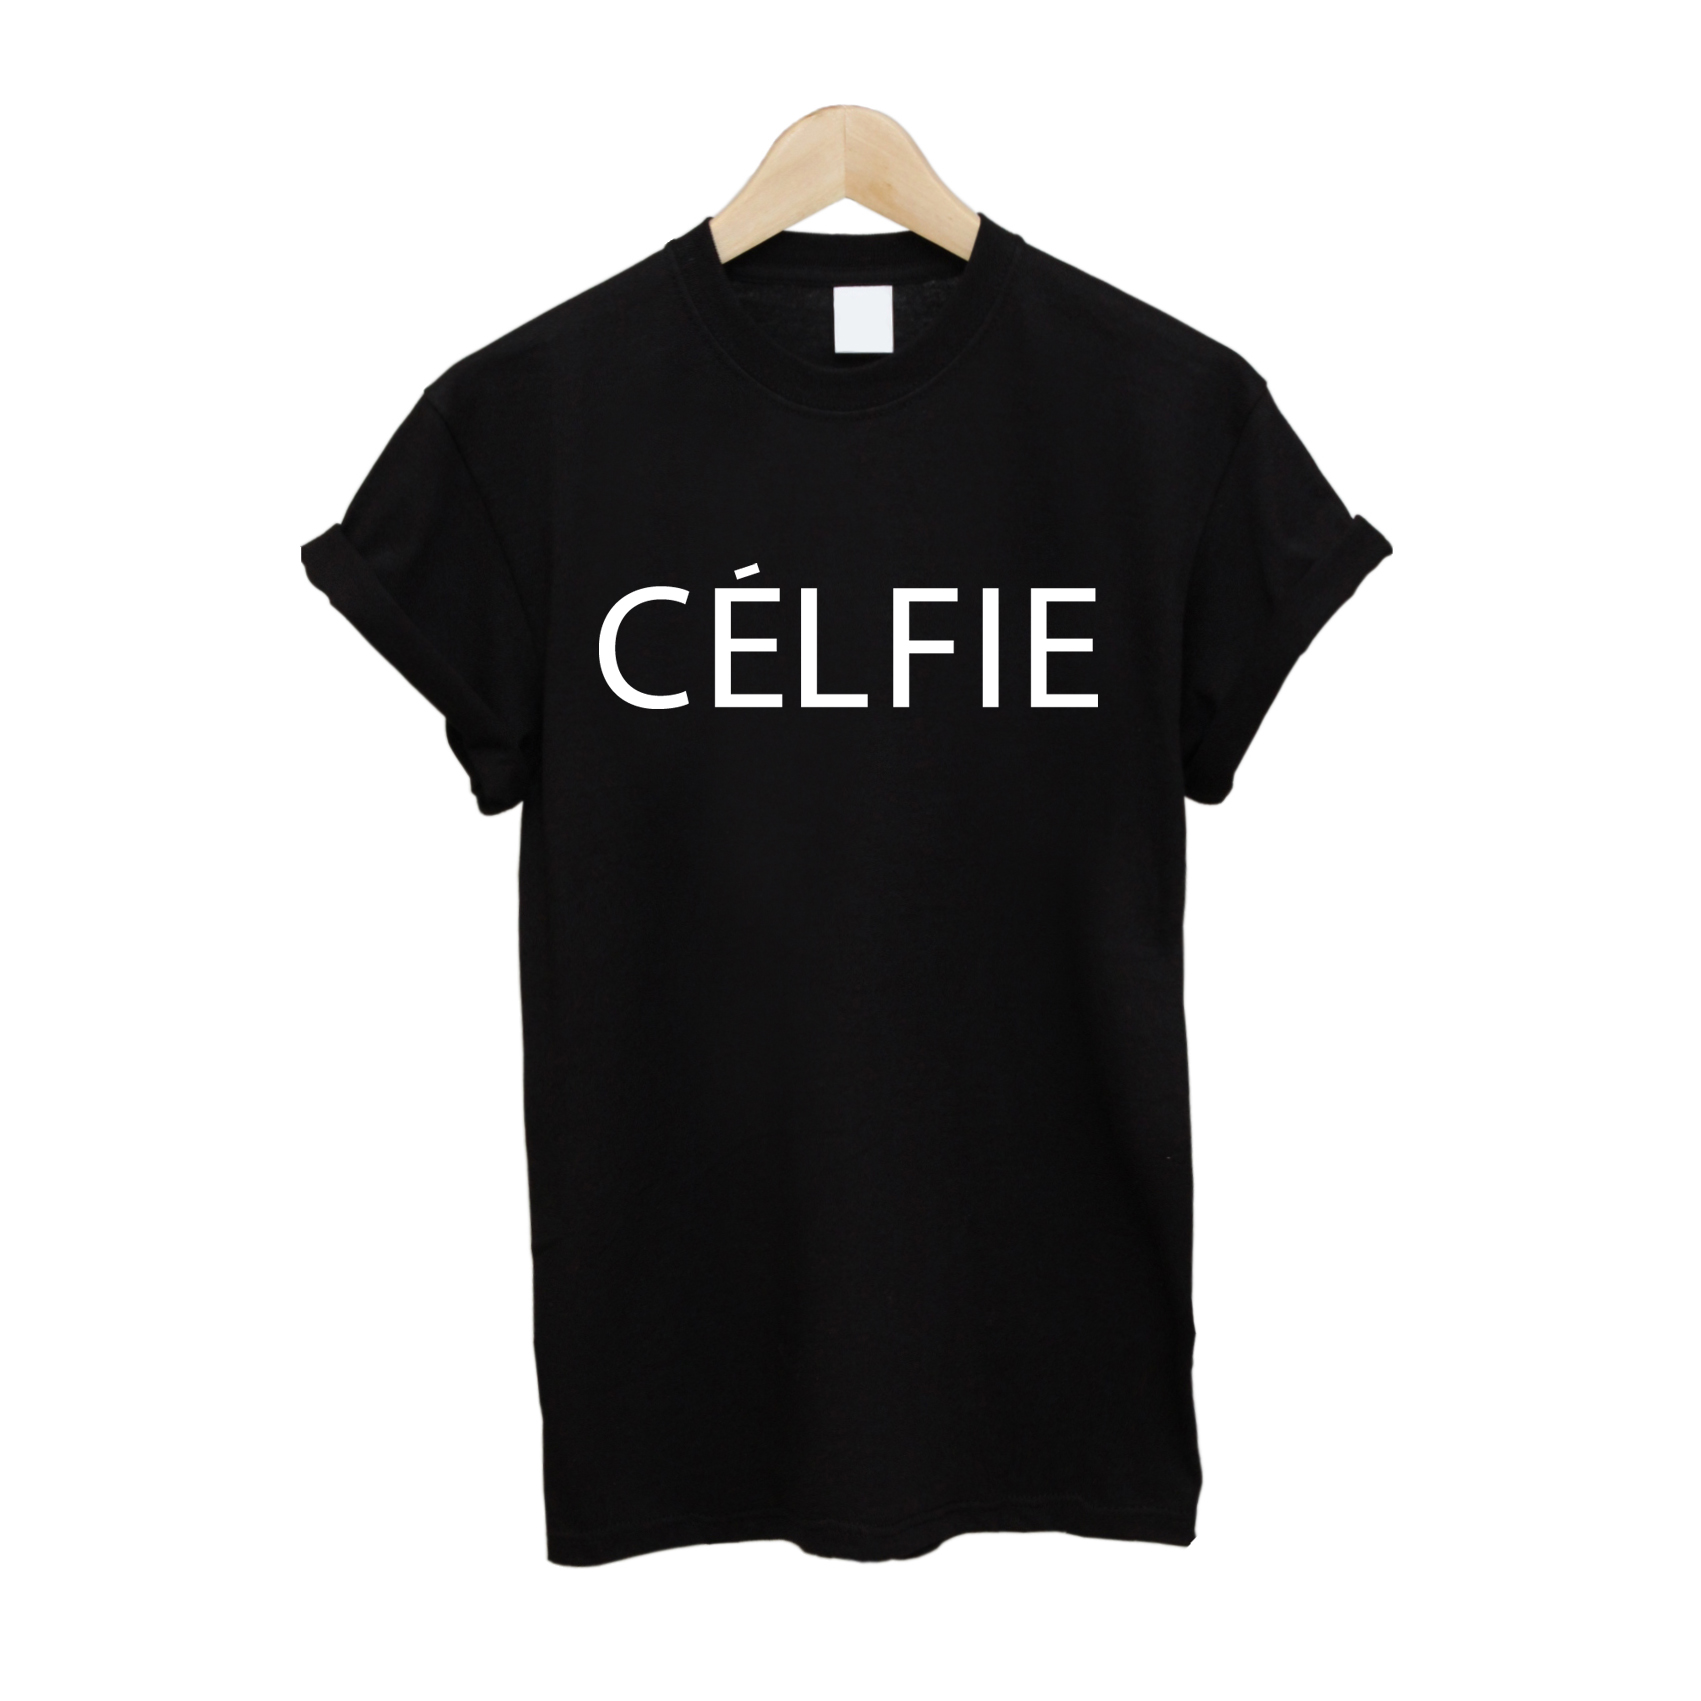 Celfie T Shirt £10   Free UK Delivery   10% OFF